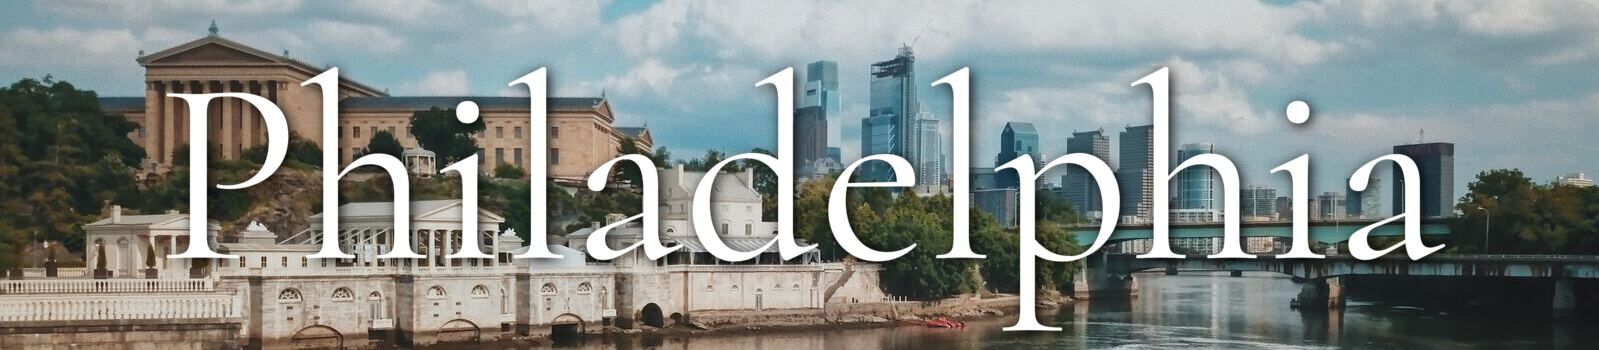 Top 10 Things to Do in Philadelphia Banner